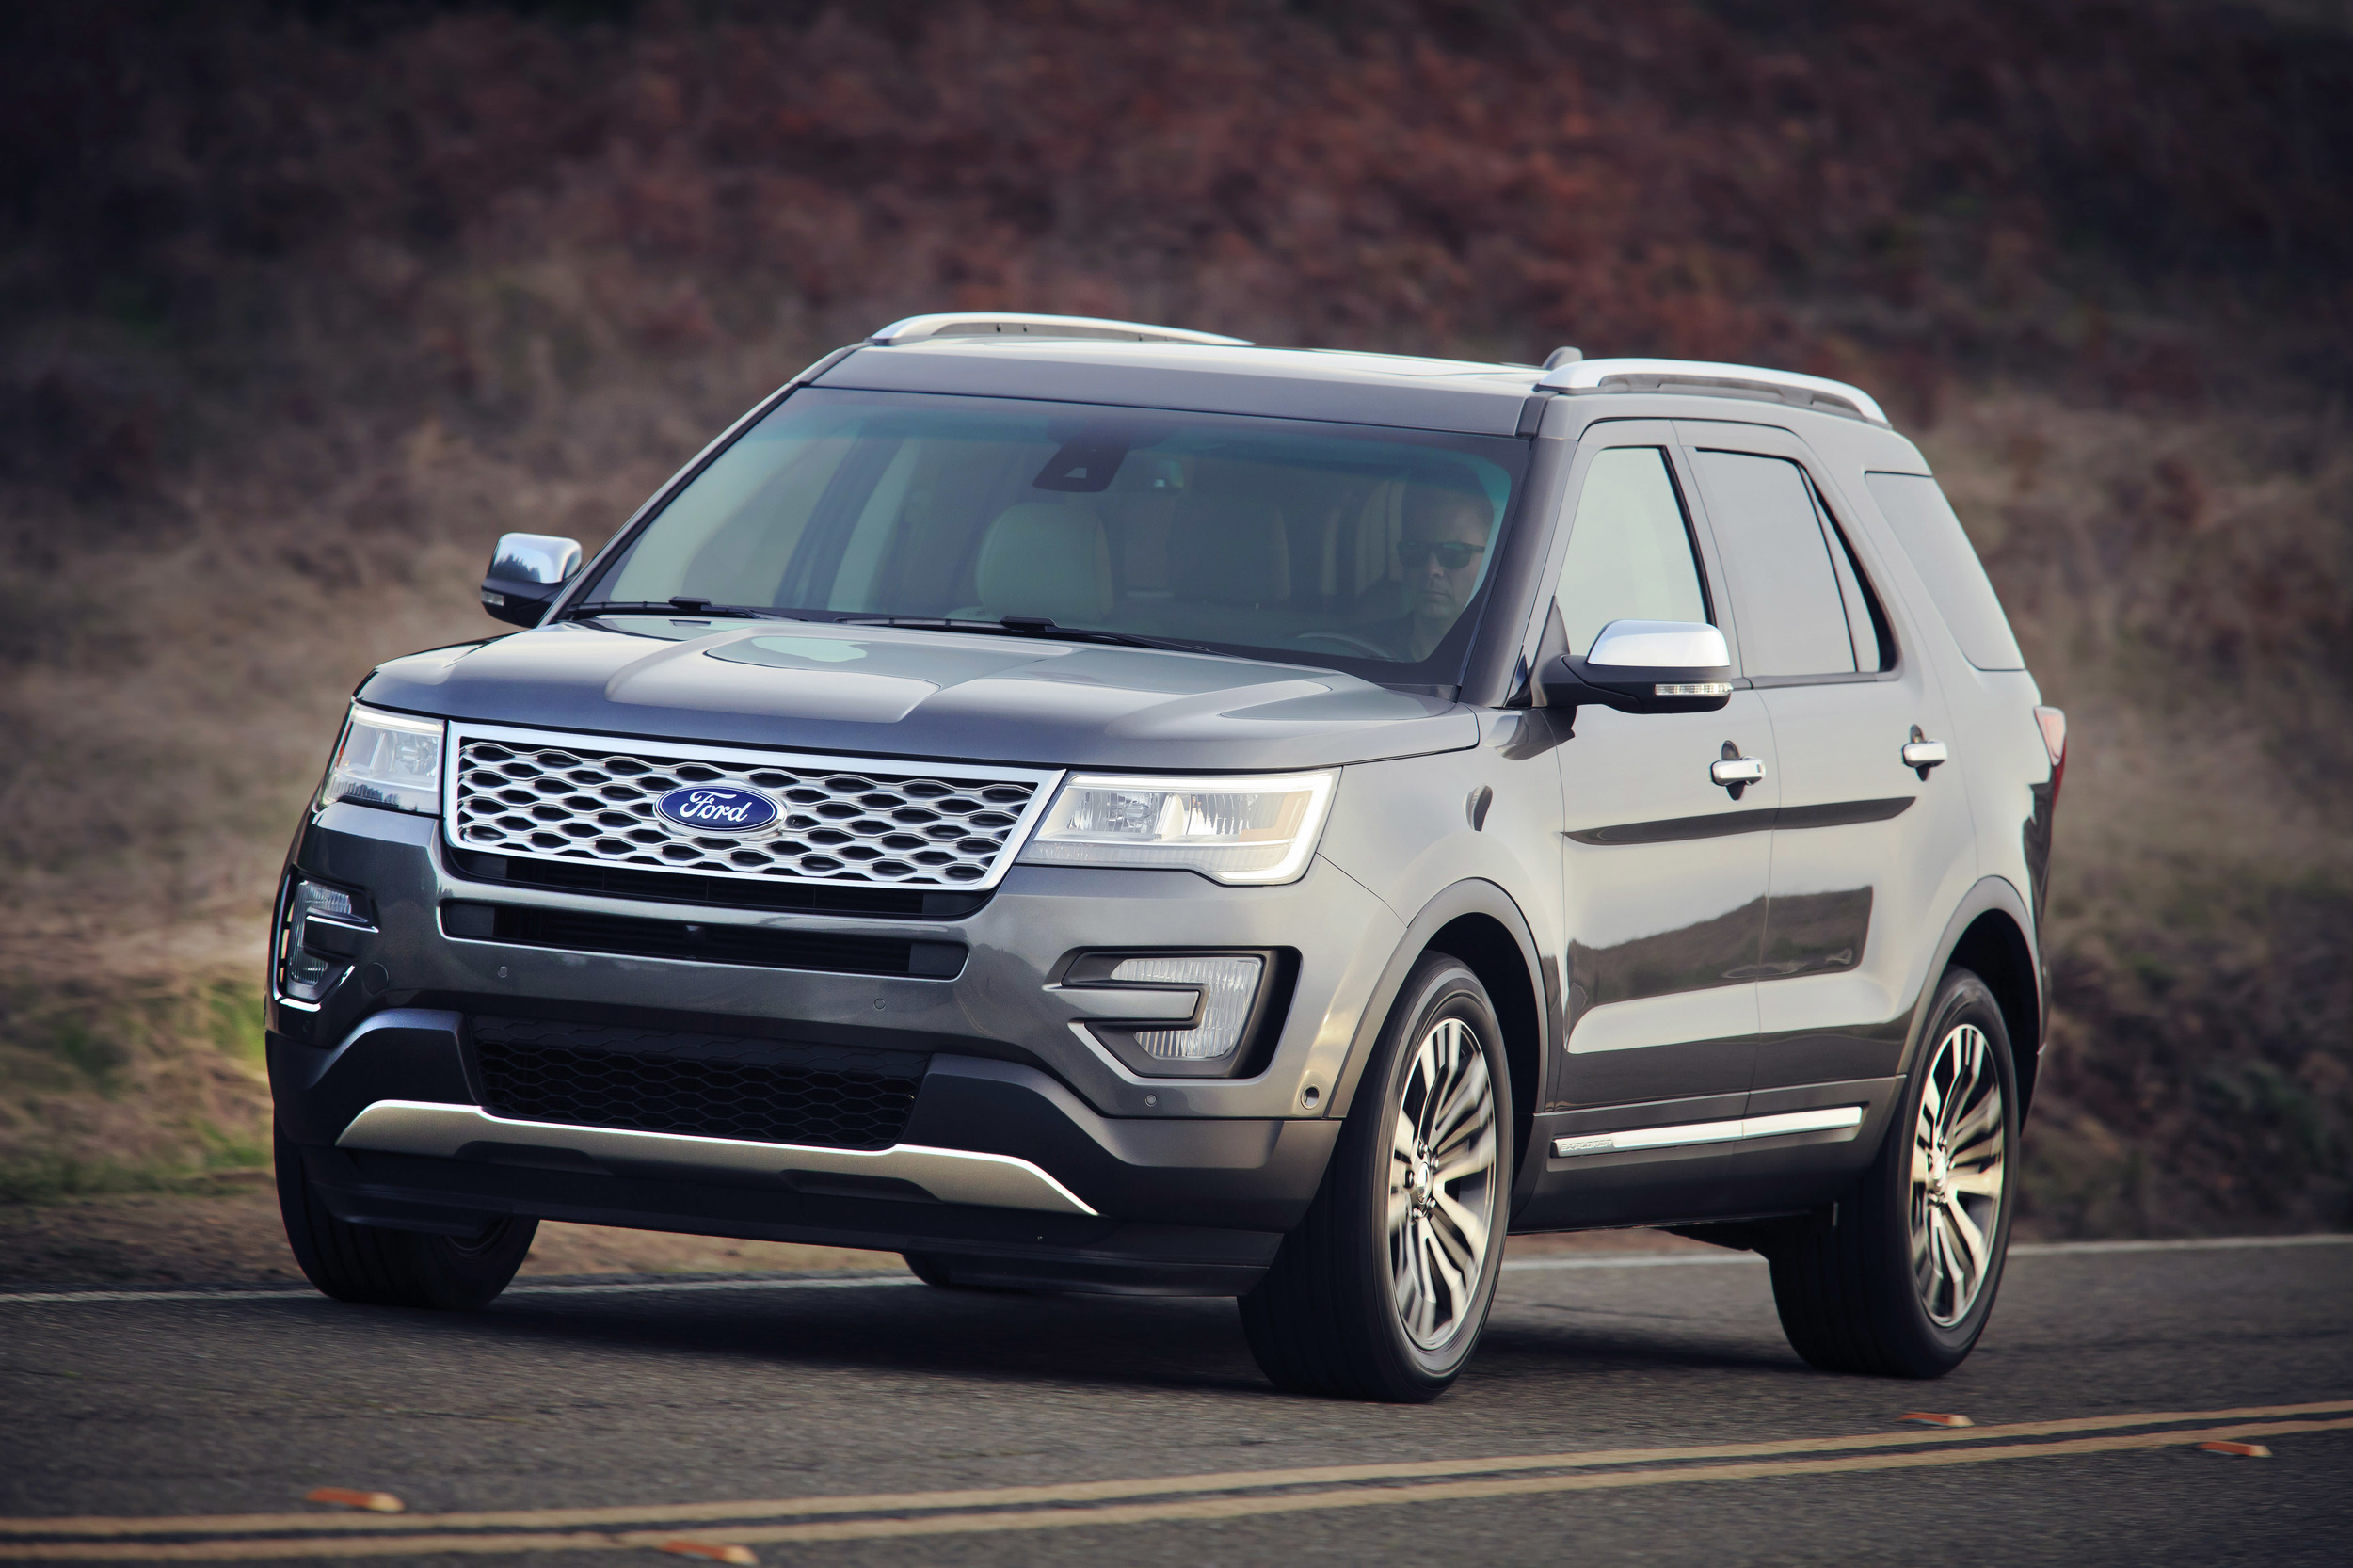 pictures specs suv explorer ford wallpaper information sport